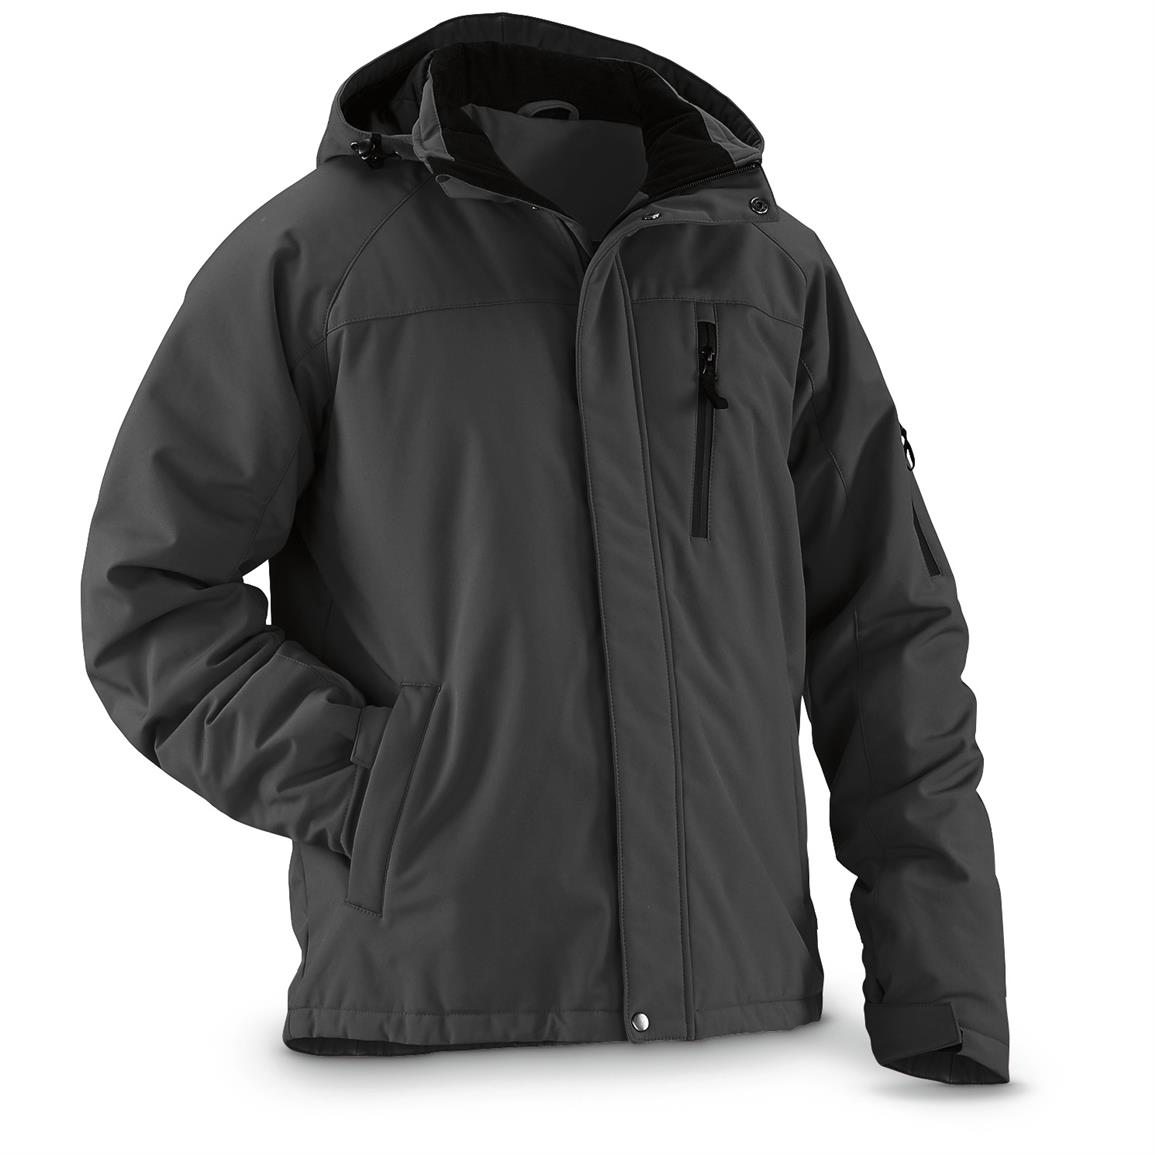 Guide Gear Men's Siberian Jacket, Onyx